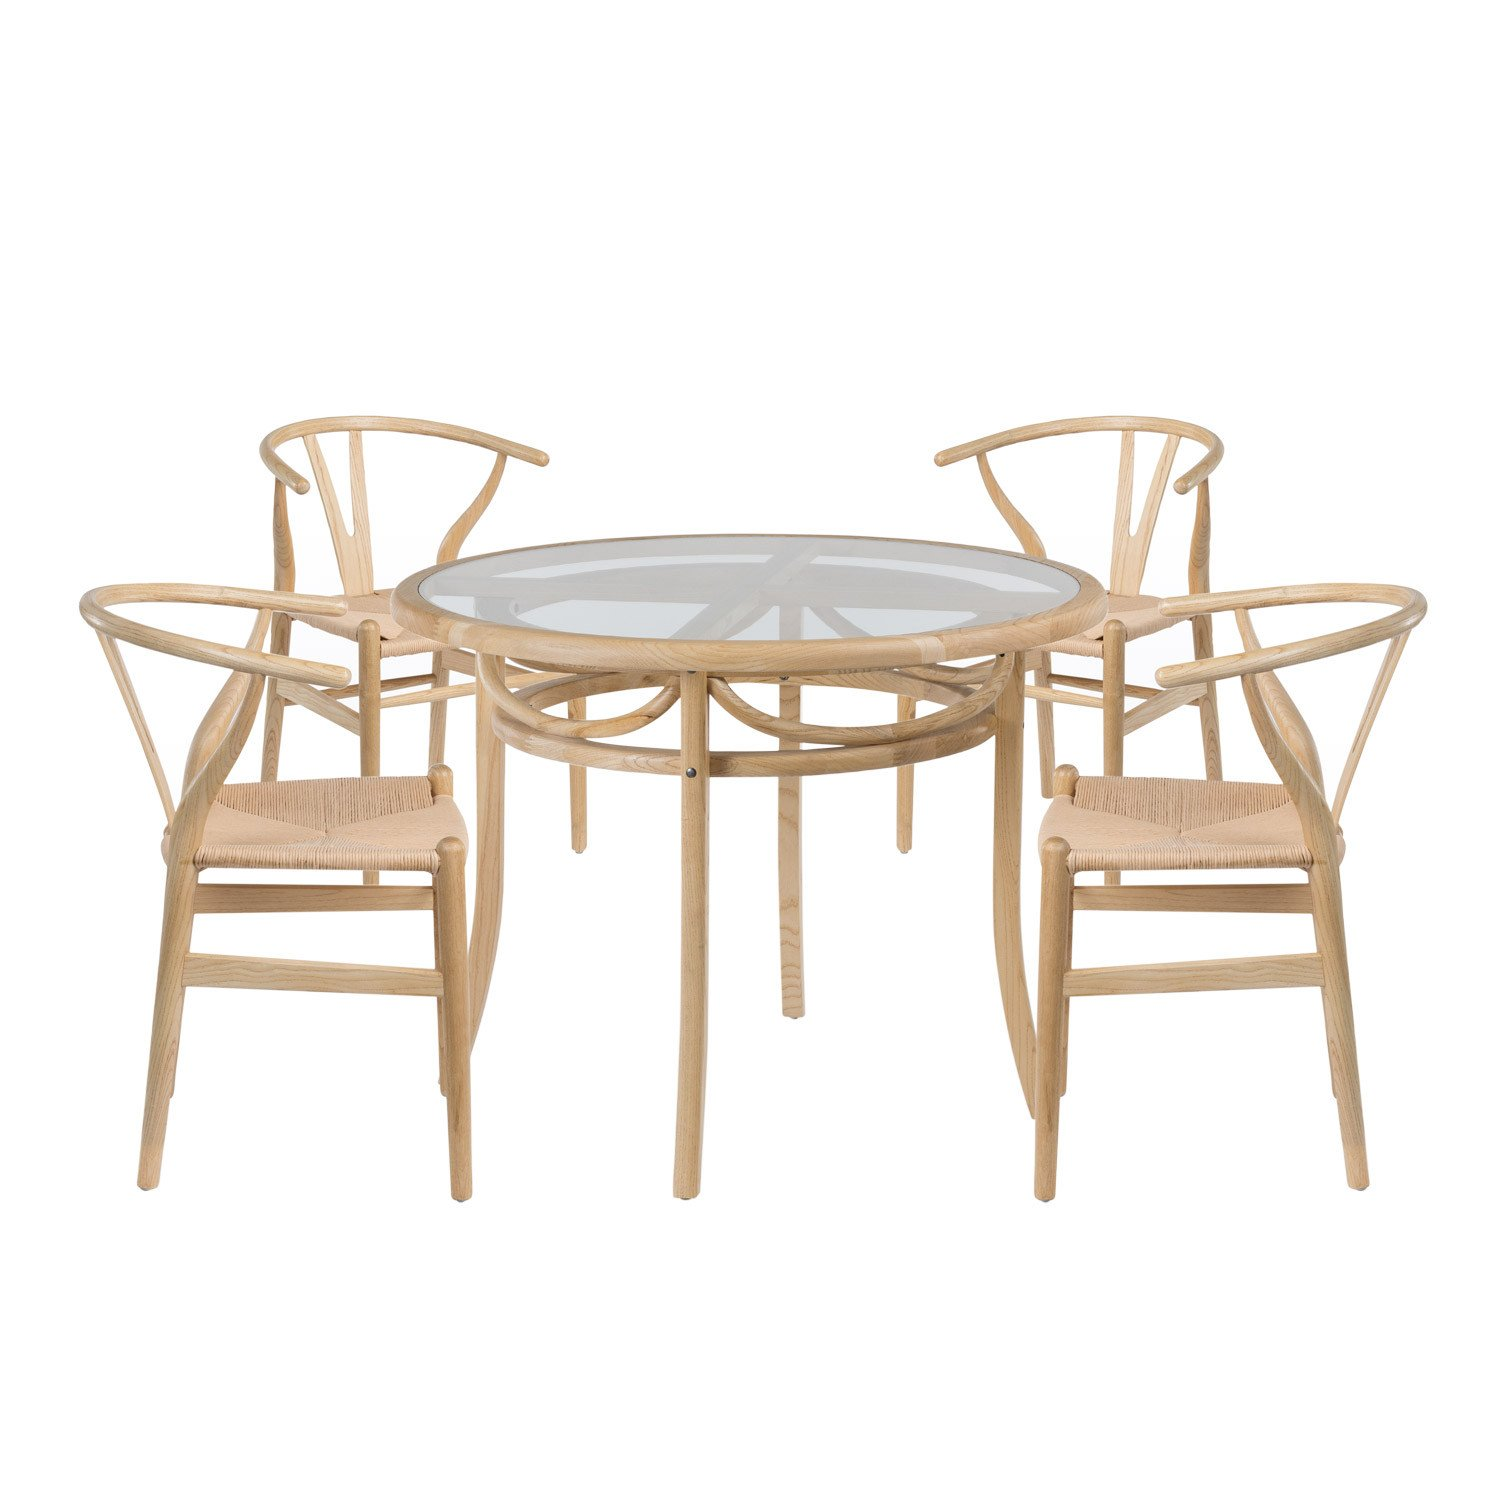 Ensemble Table Et Chaise De Jardin Inspirant Lot Table Thon Bois & 4 Chaises Uish Bois Of 36 Beau Ensemble Table Et Chaise De Jardin